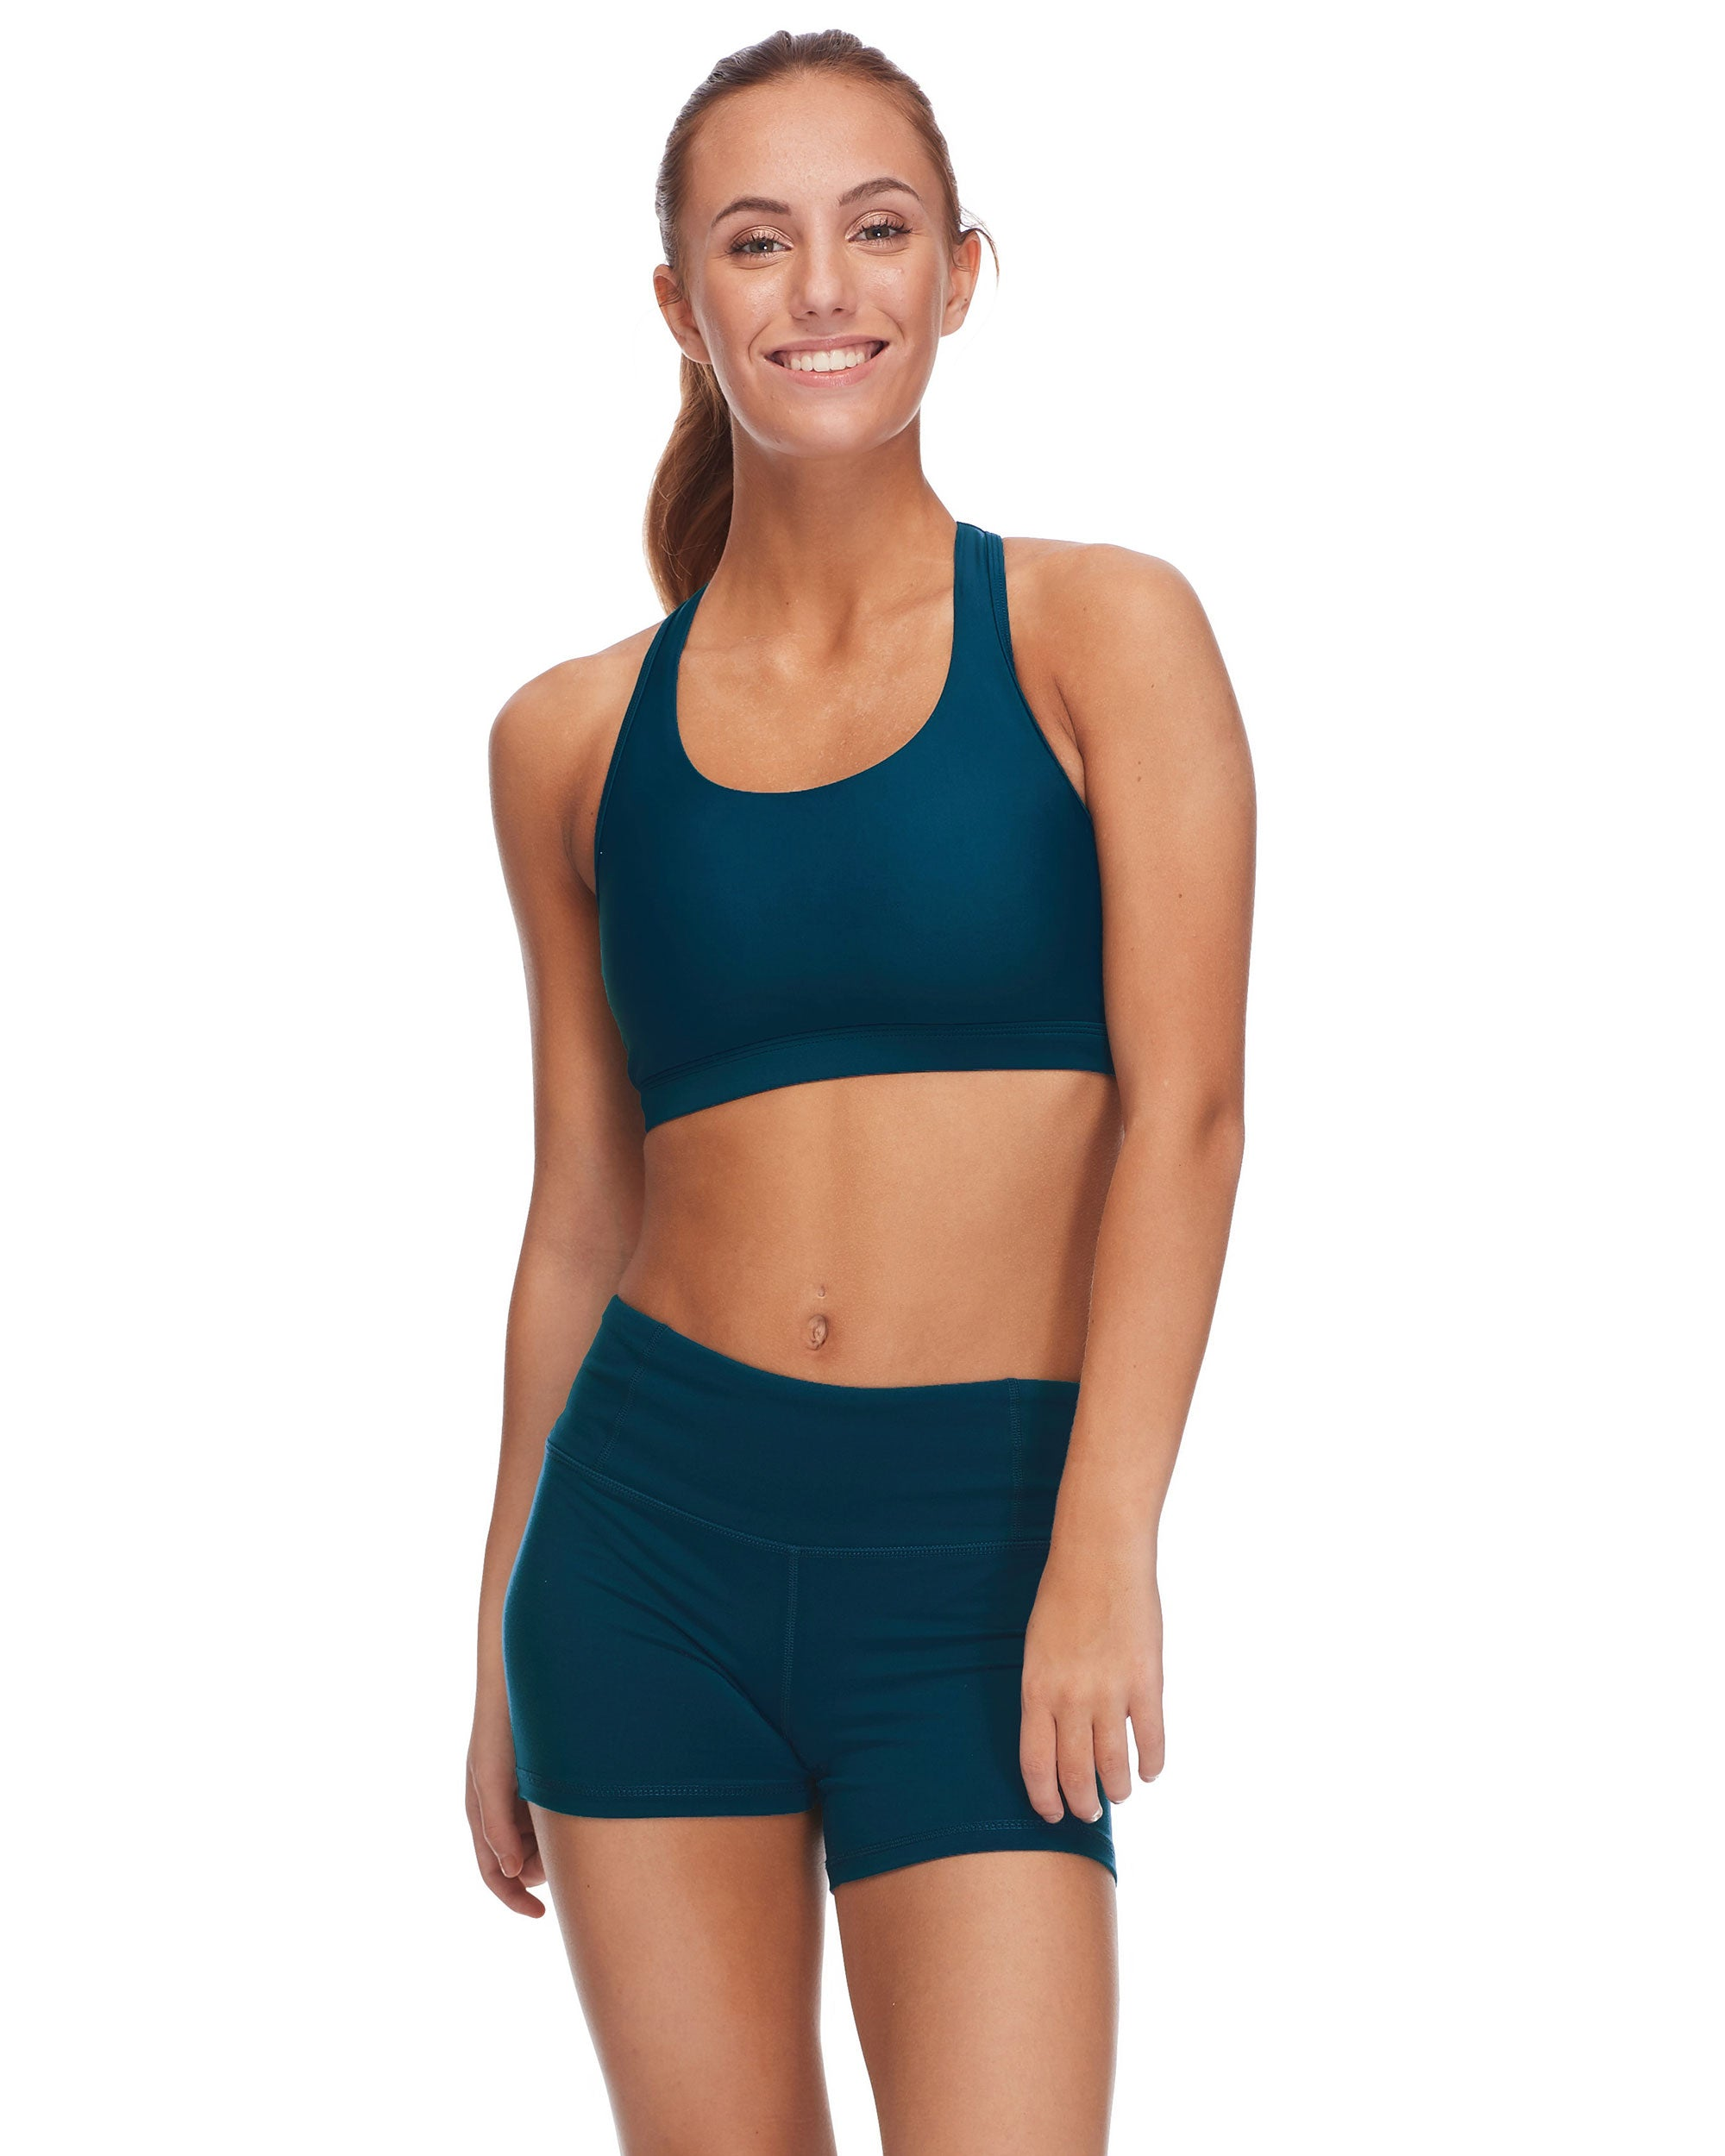 Quake High-Support Sports Bra - Oceanic